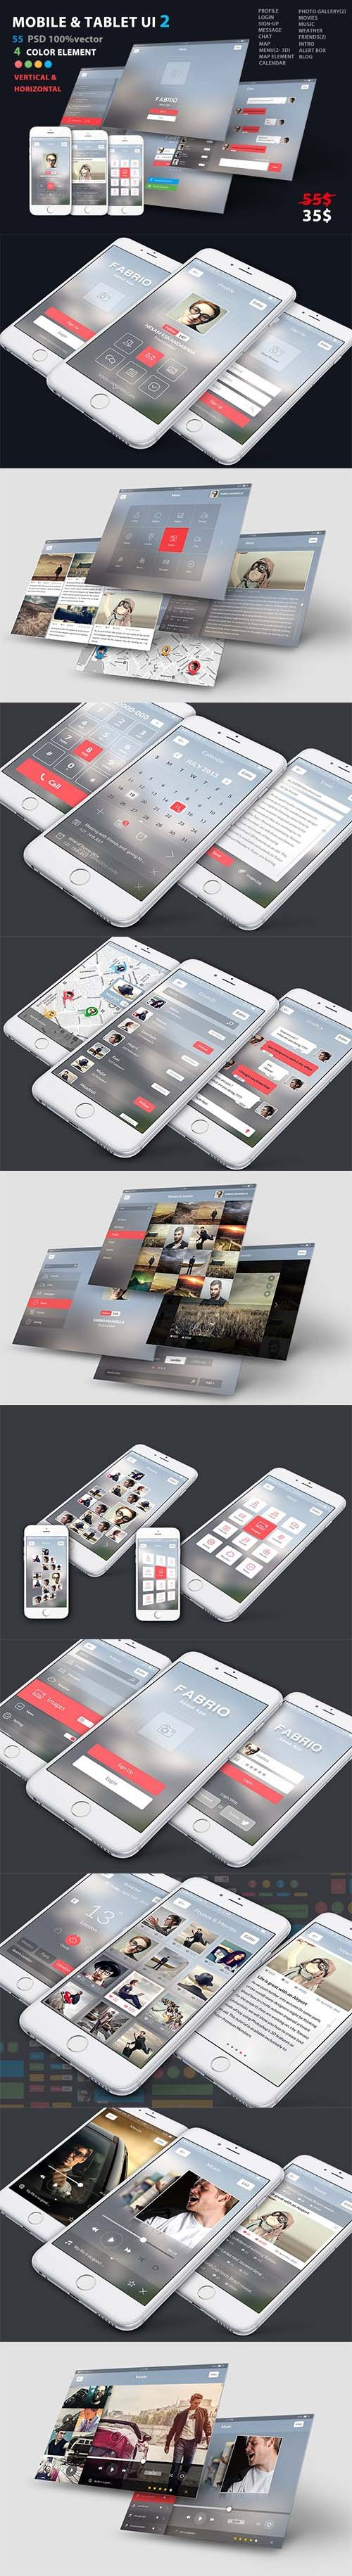 Mobile and Tablet UX UI kit 2 - CM 1966000